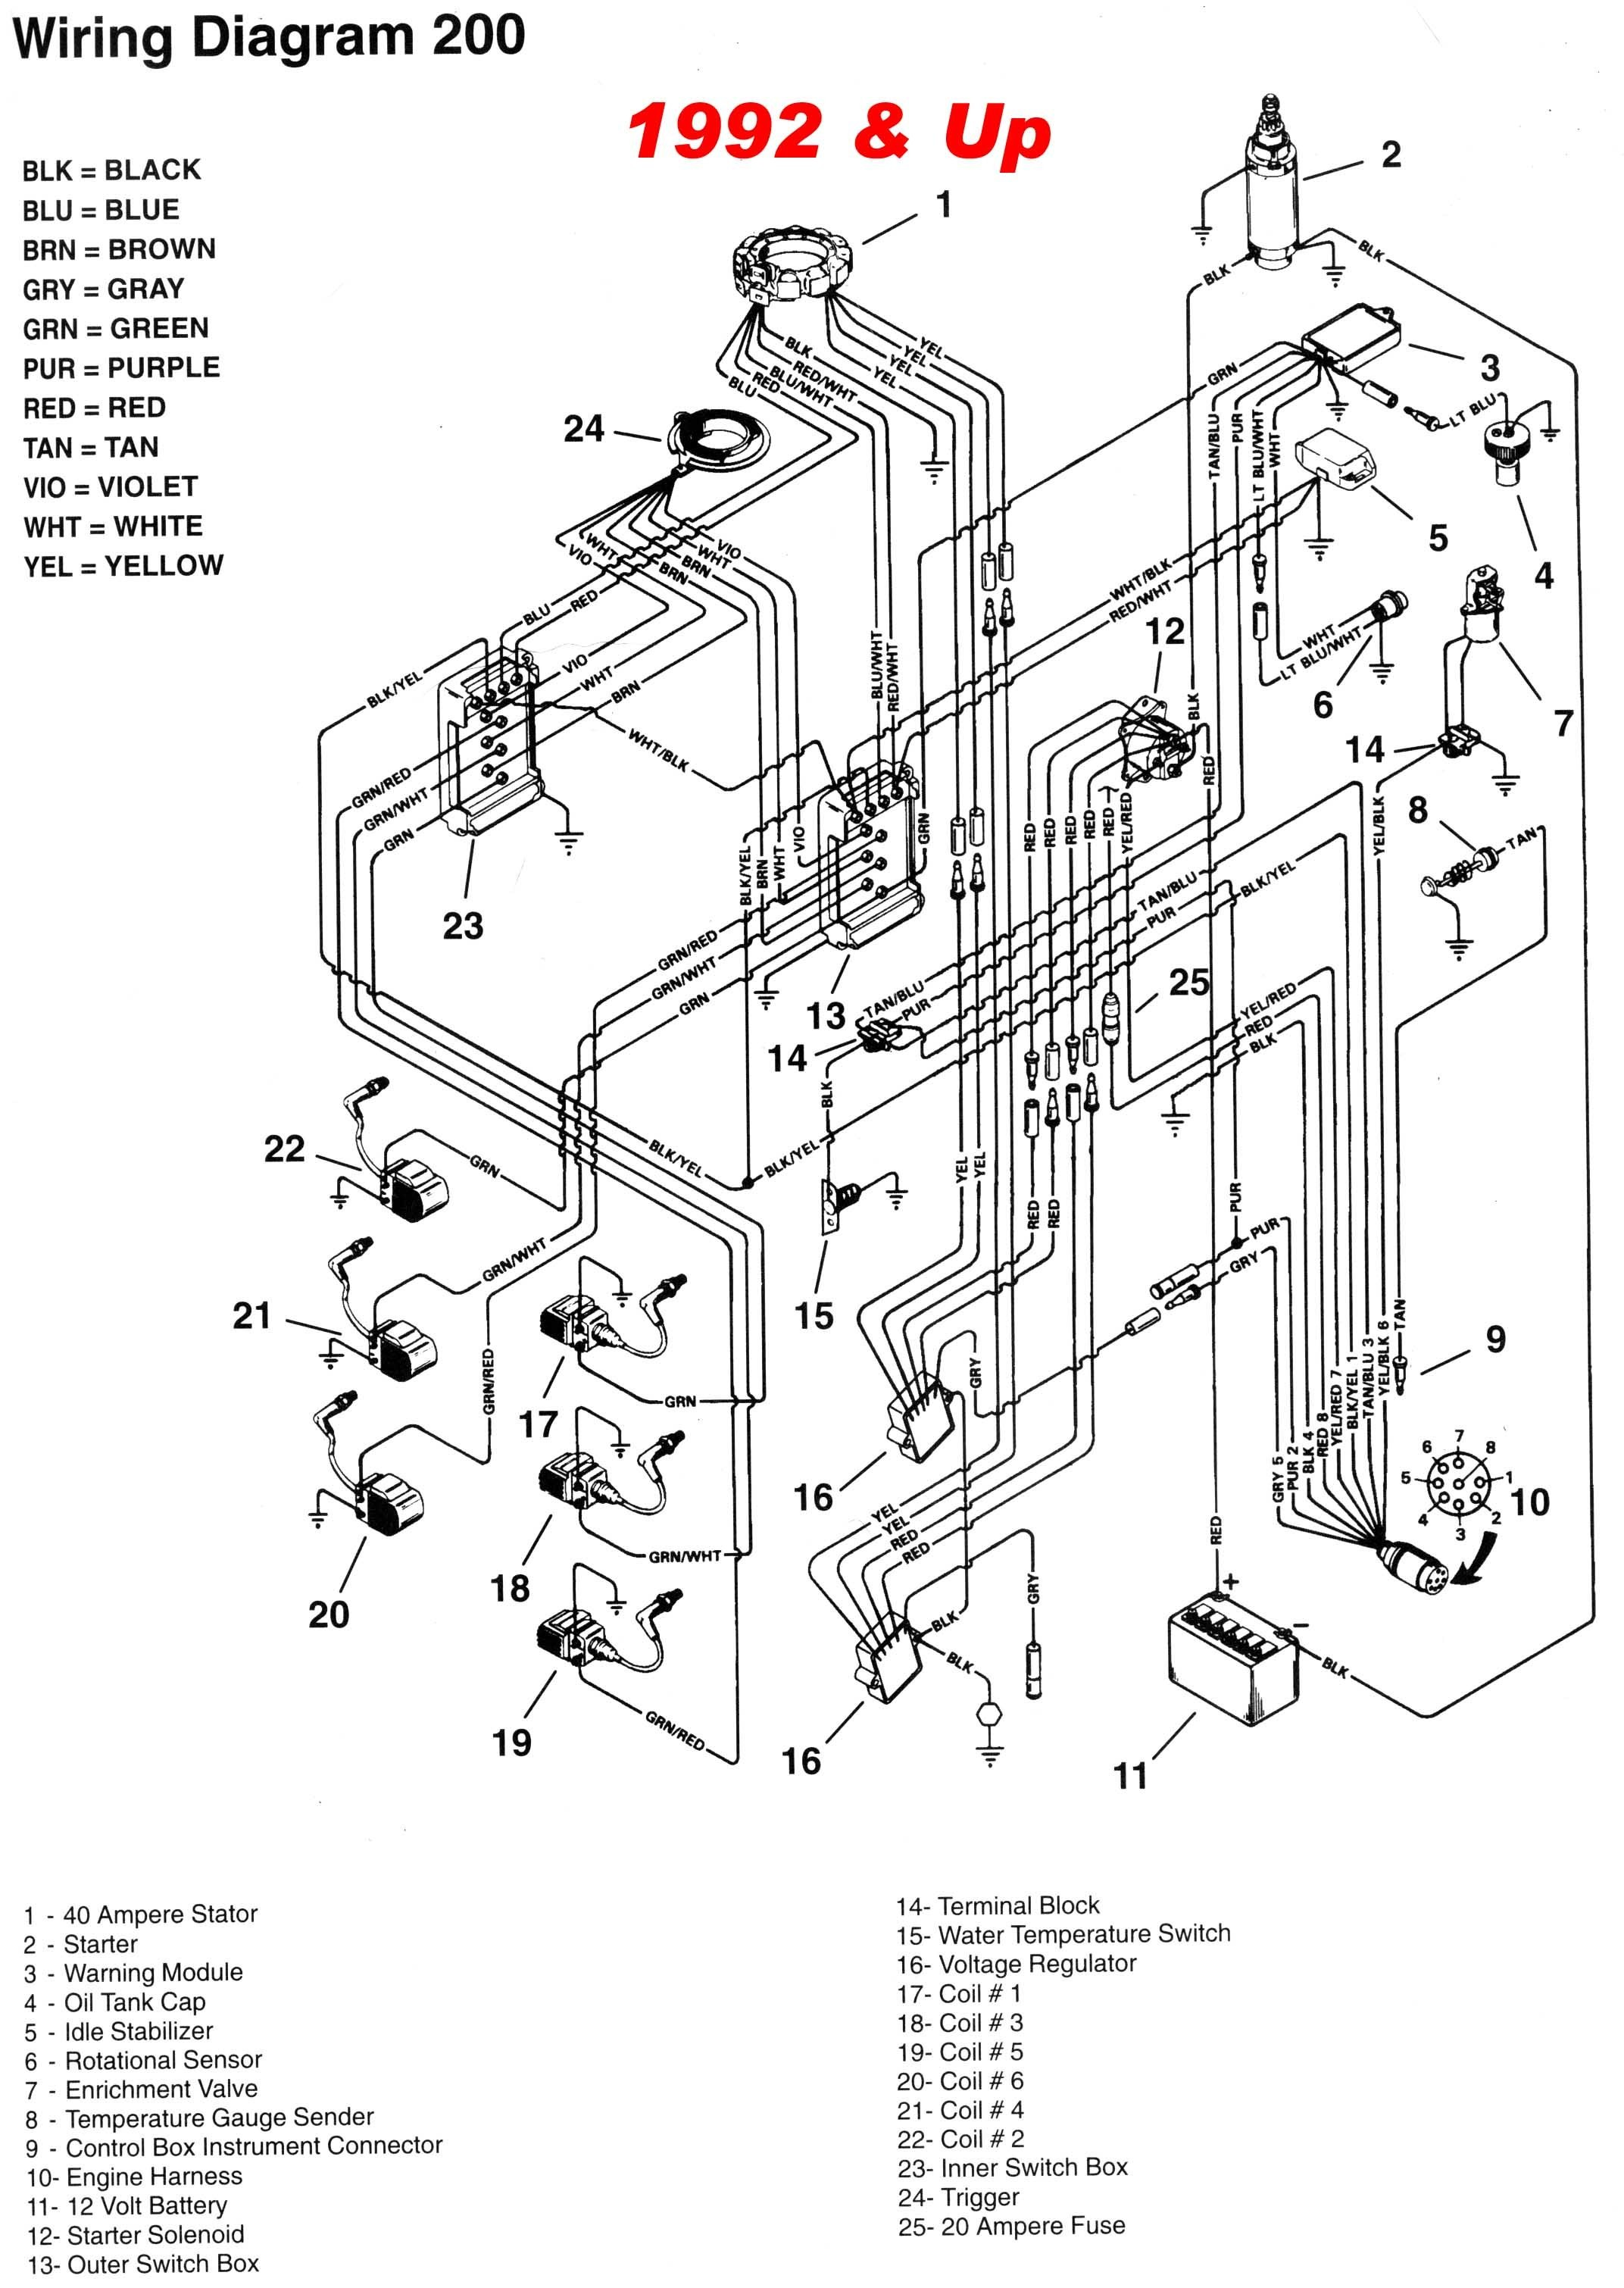 Wiring Diagram Mercury Ignition Switch 51 Mercury Wiring Diagram Of Wiring Diagram Mercury Ignition Switch